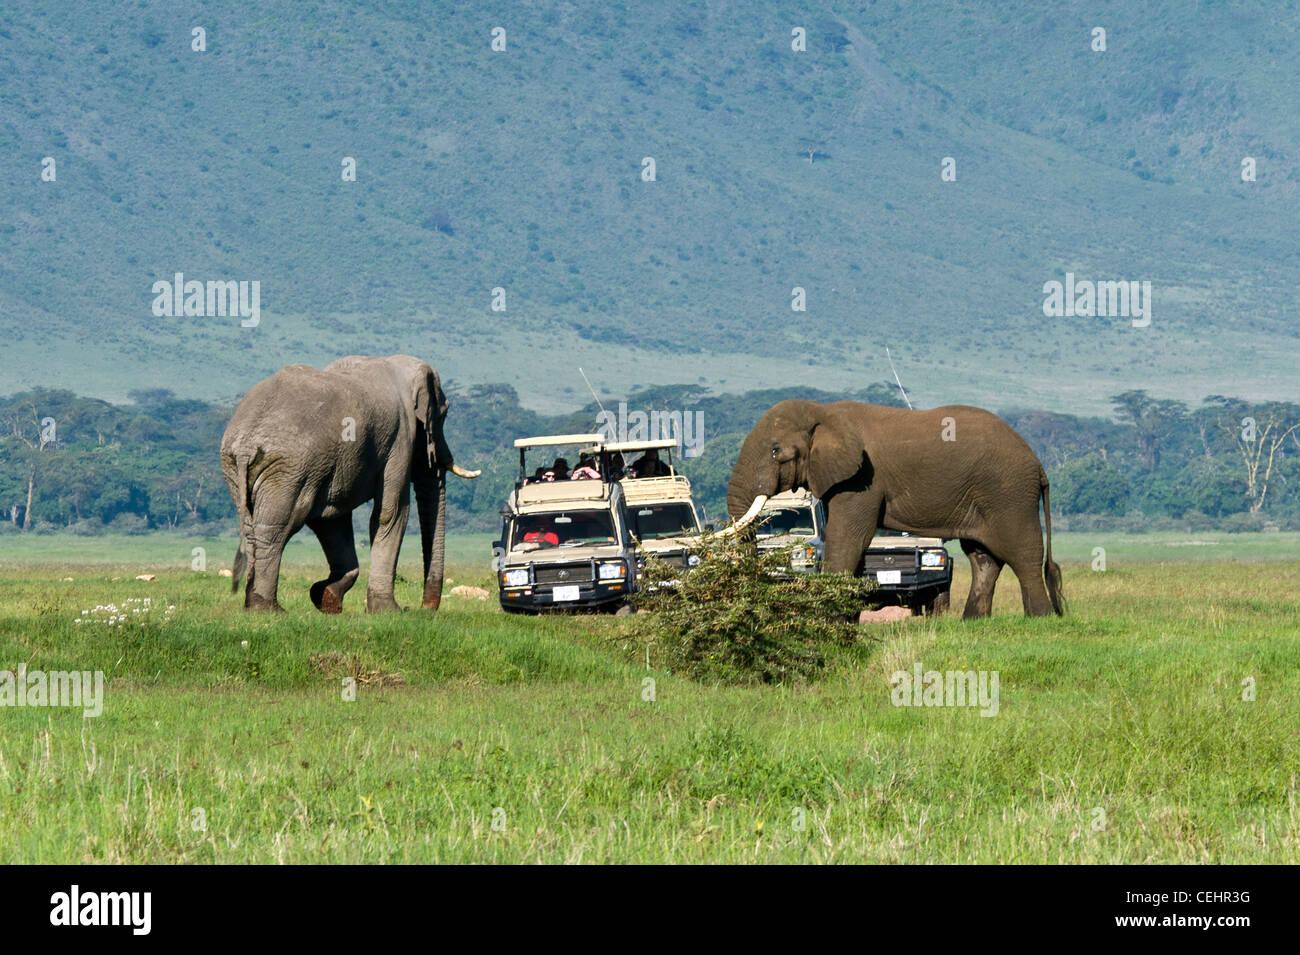 Tourists on safari watching two elephants (Loxodonta africana) taking measure of each other Ngorongoro Crater Tanzania - Stock Image